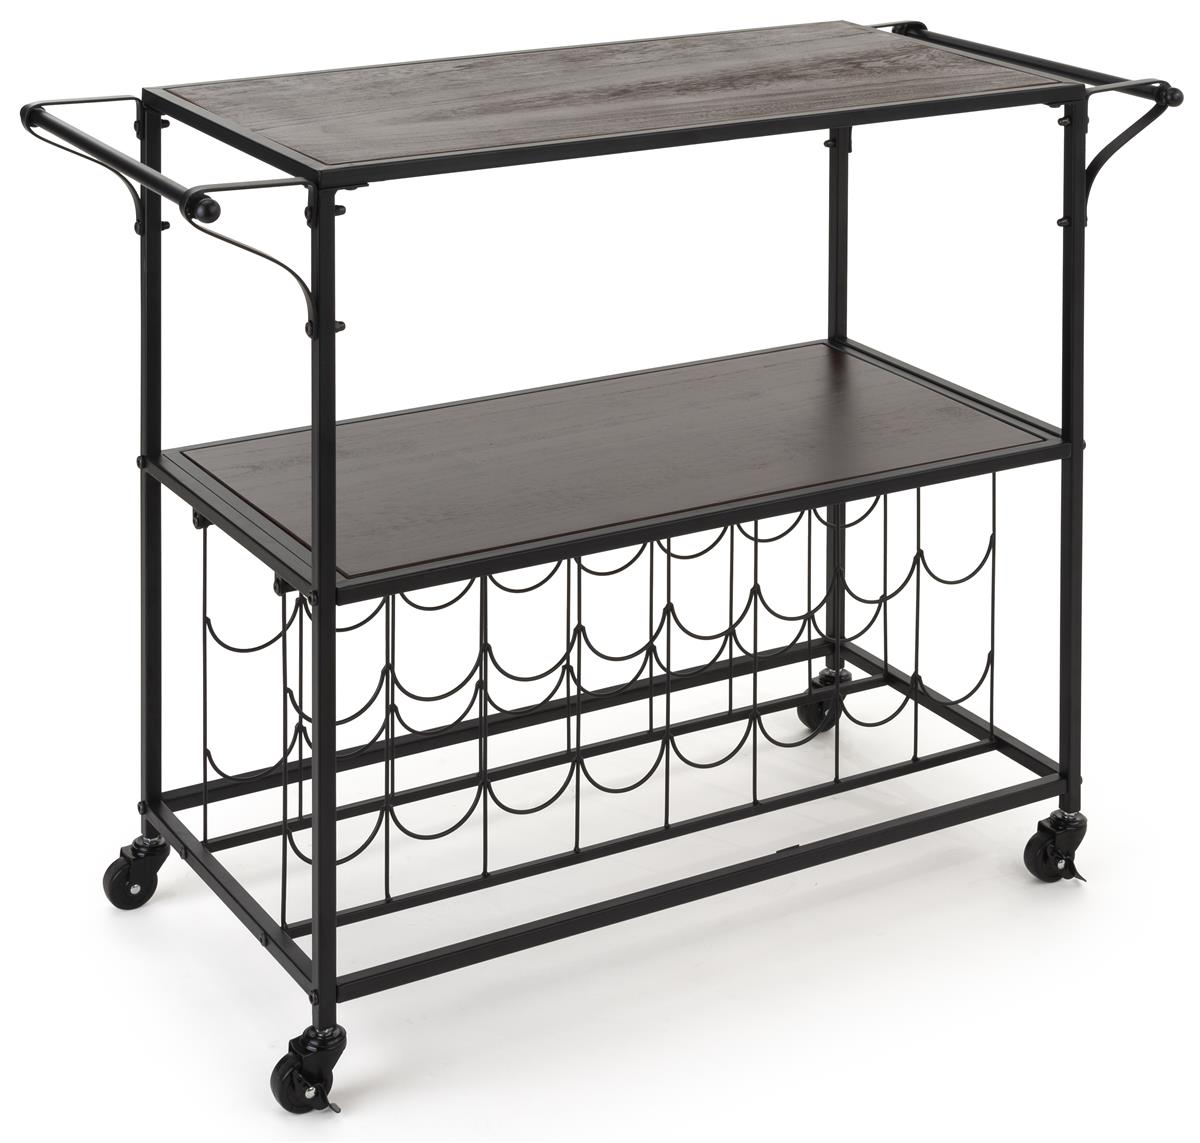 41 inch wide liquor cart with wine rack features a rectangular shape